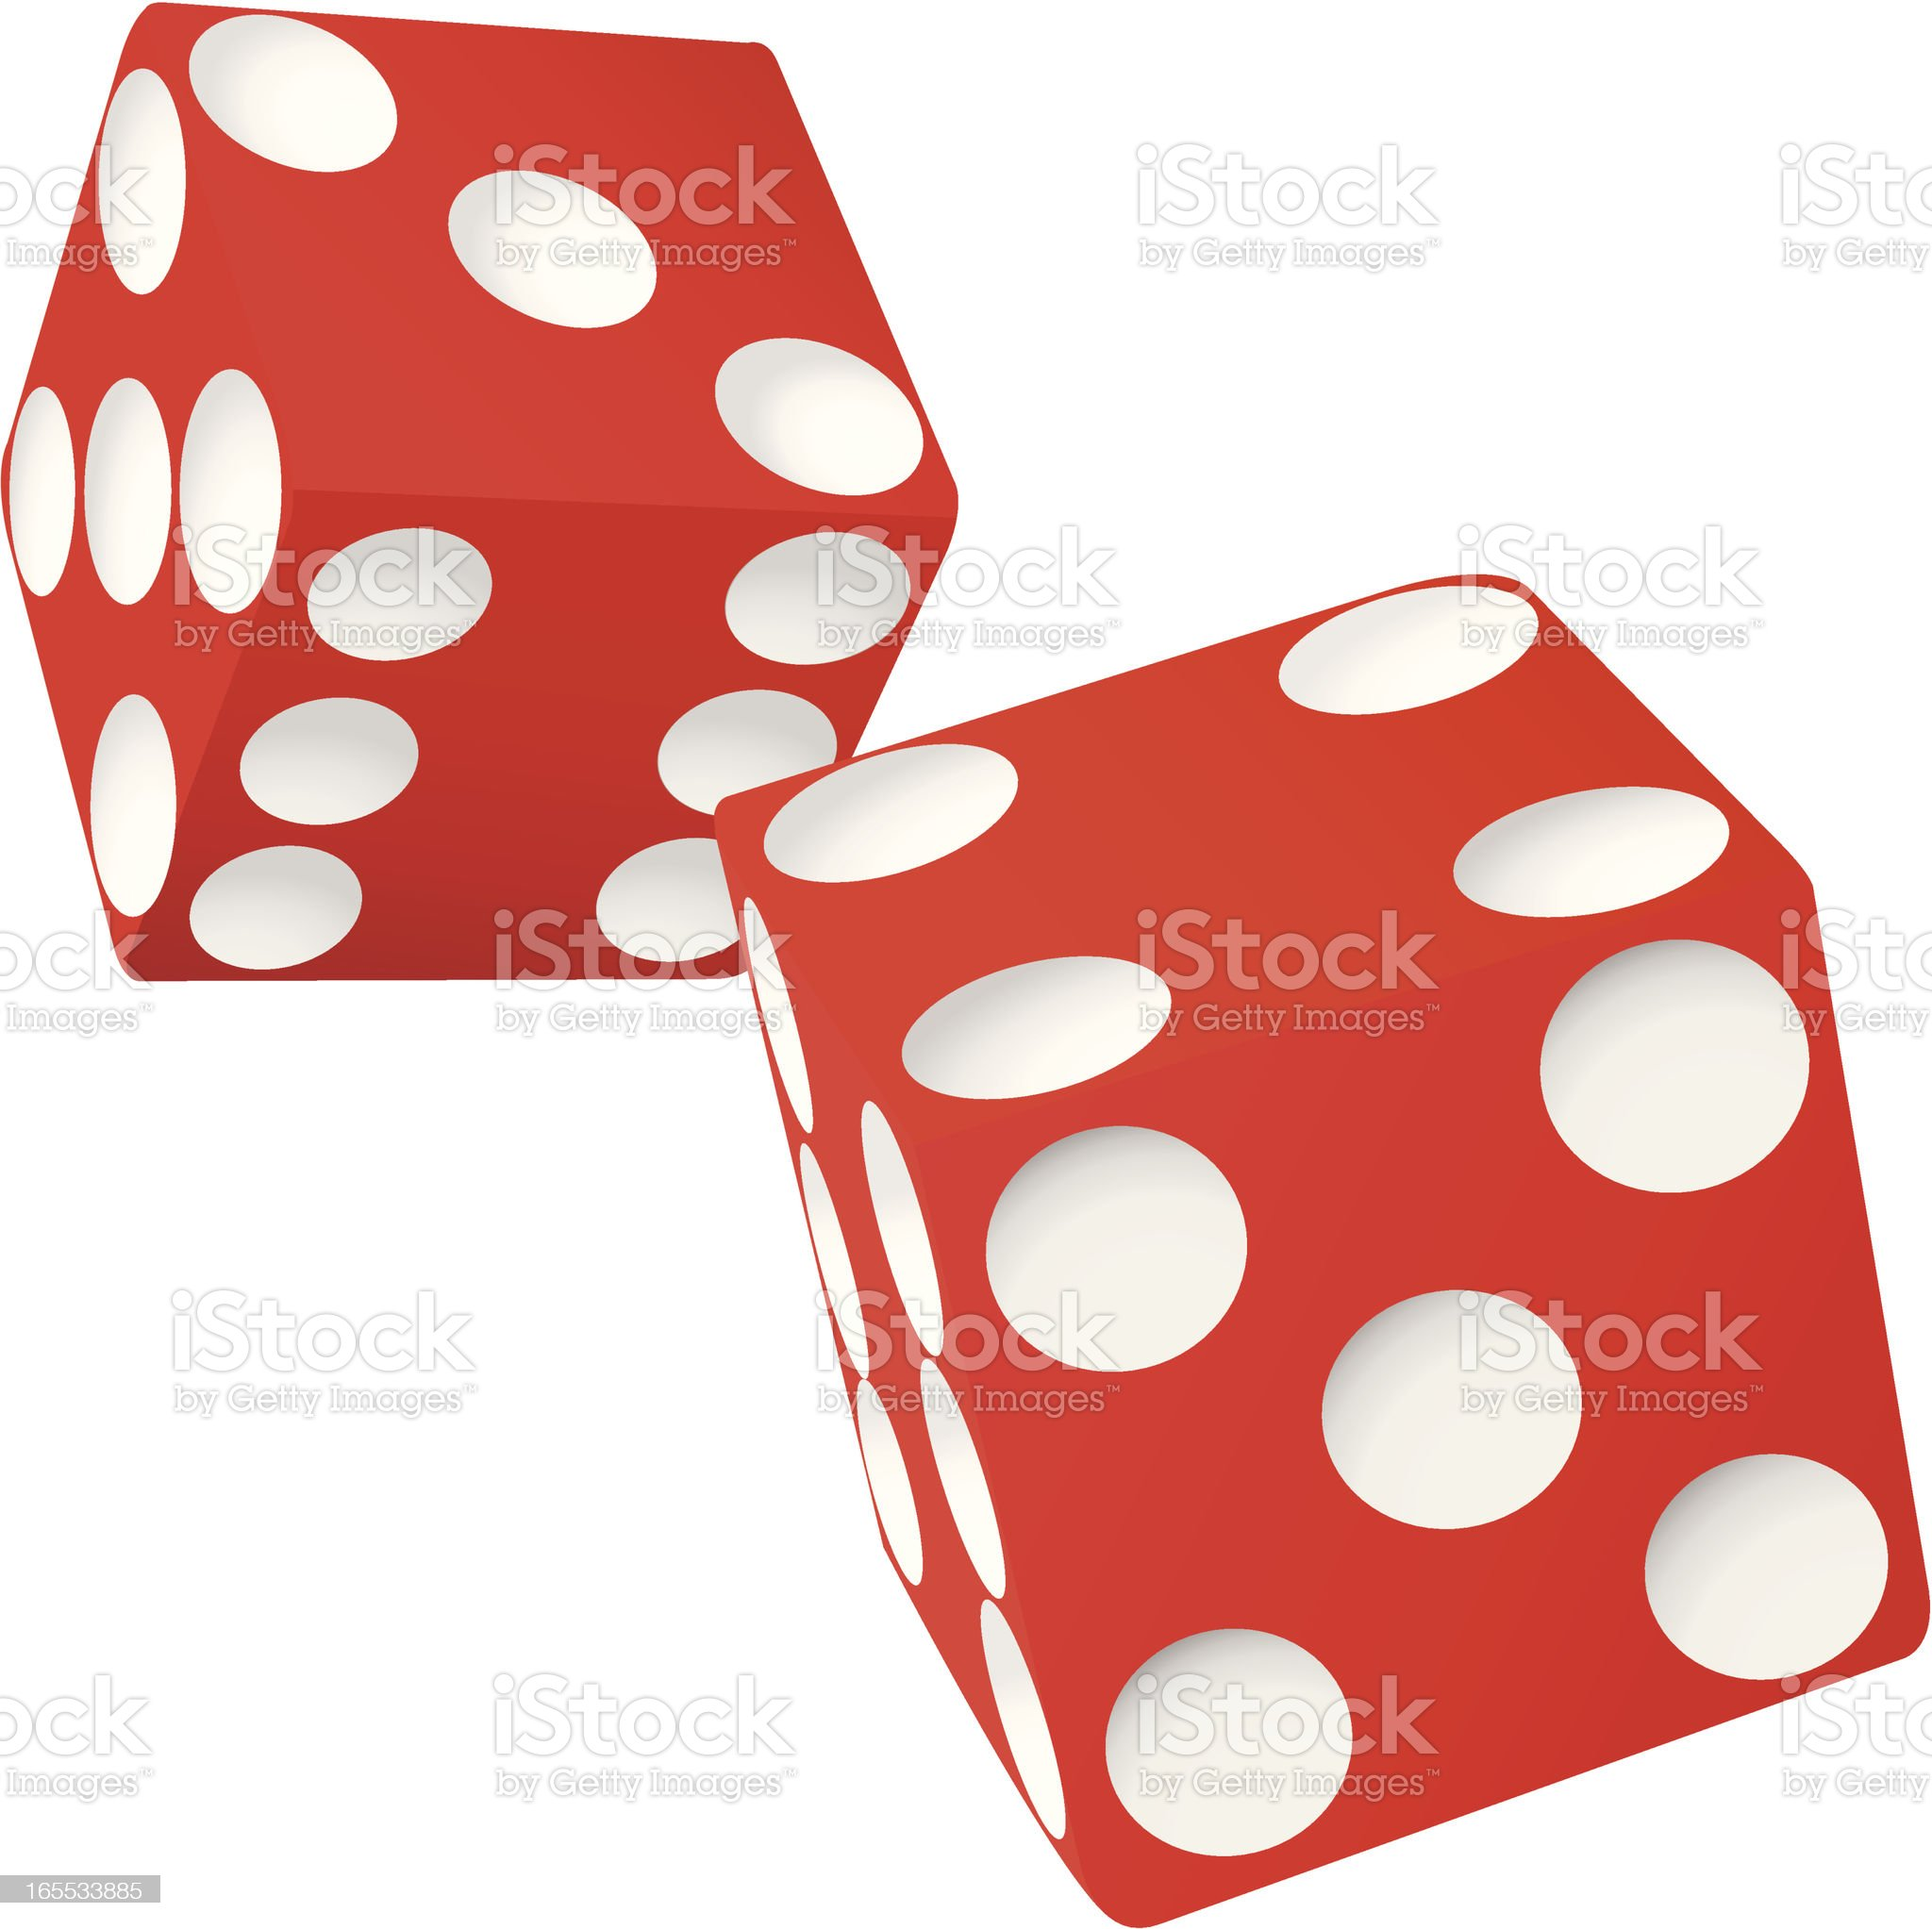 Rolling Dice royalty-free stock vector art